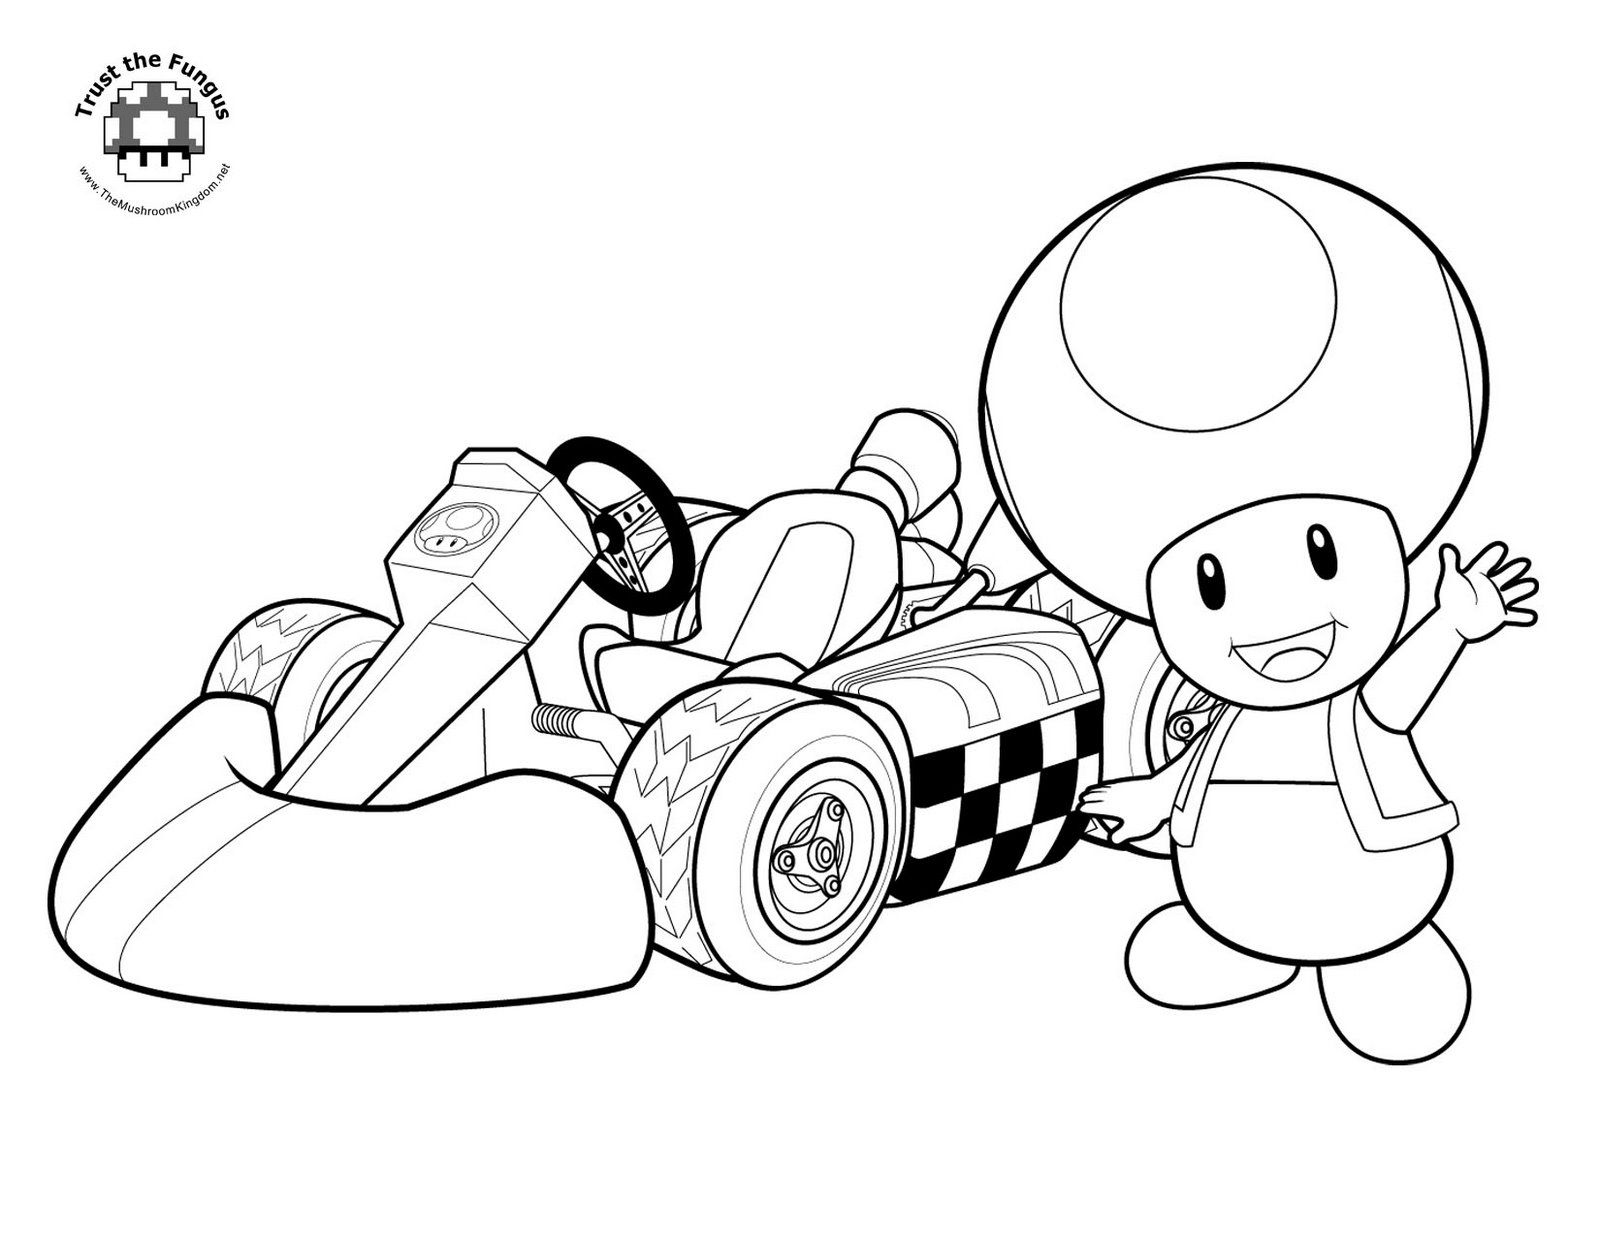 Printable Mario Coloring Pages | Mario Bros | Pinterest | Mario kart ...